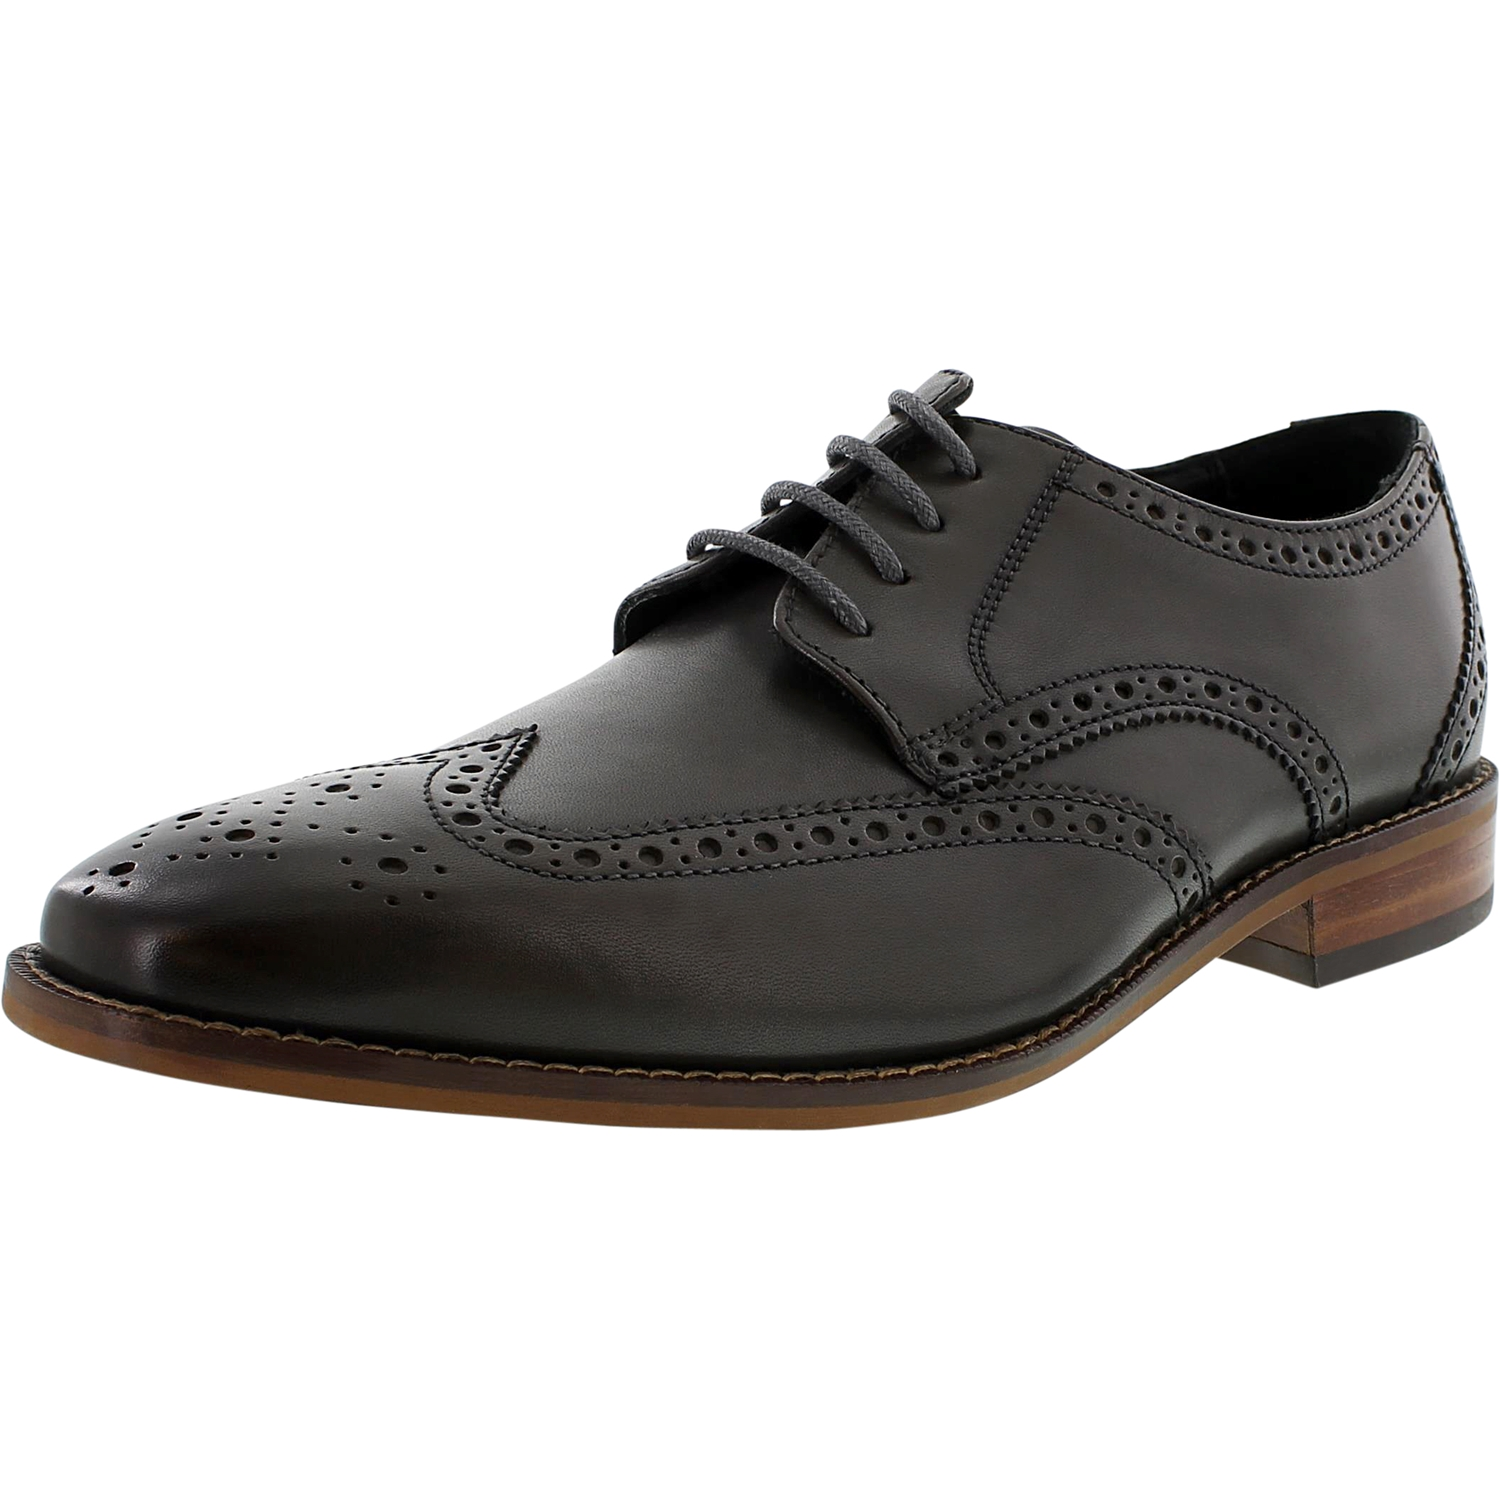 Florsheim Men's Castellano Ankle-High Leather Oxford Shoe by Florsheim